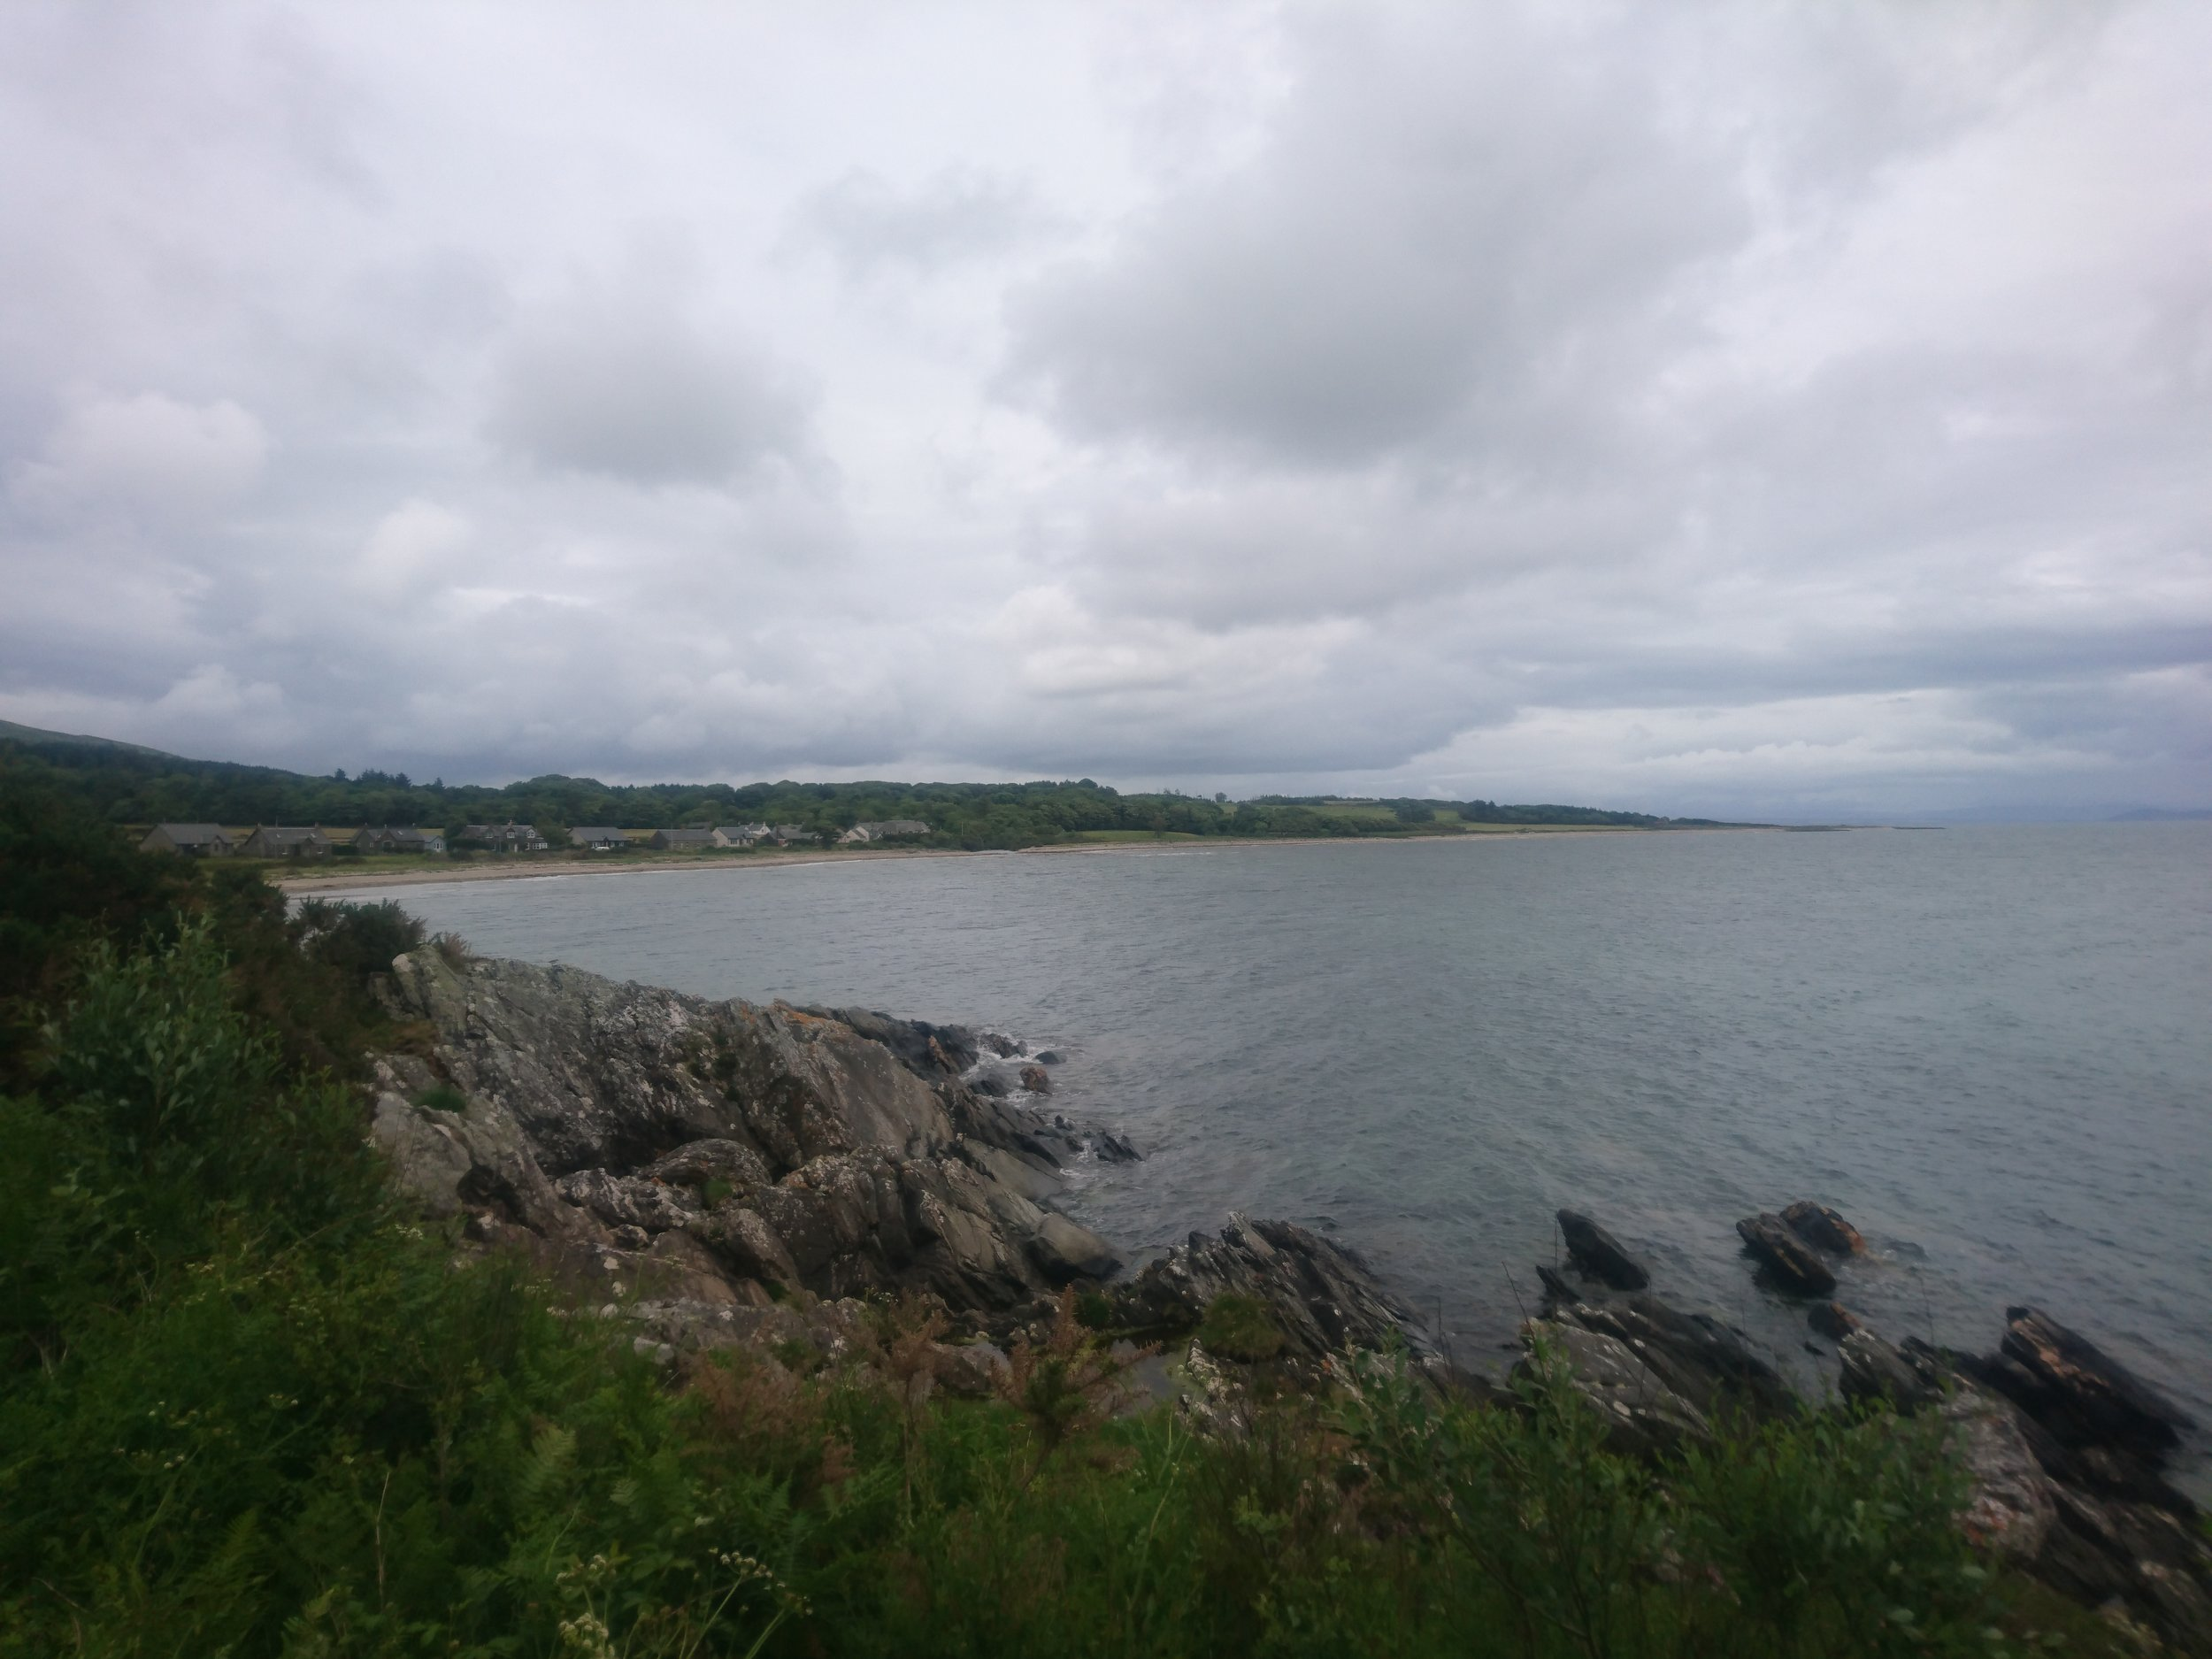 Looking back to Skipness